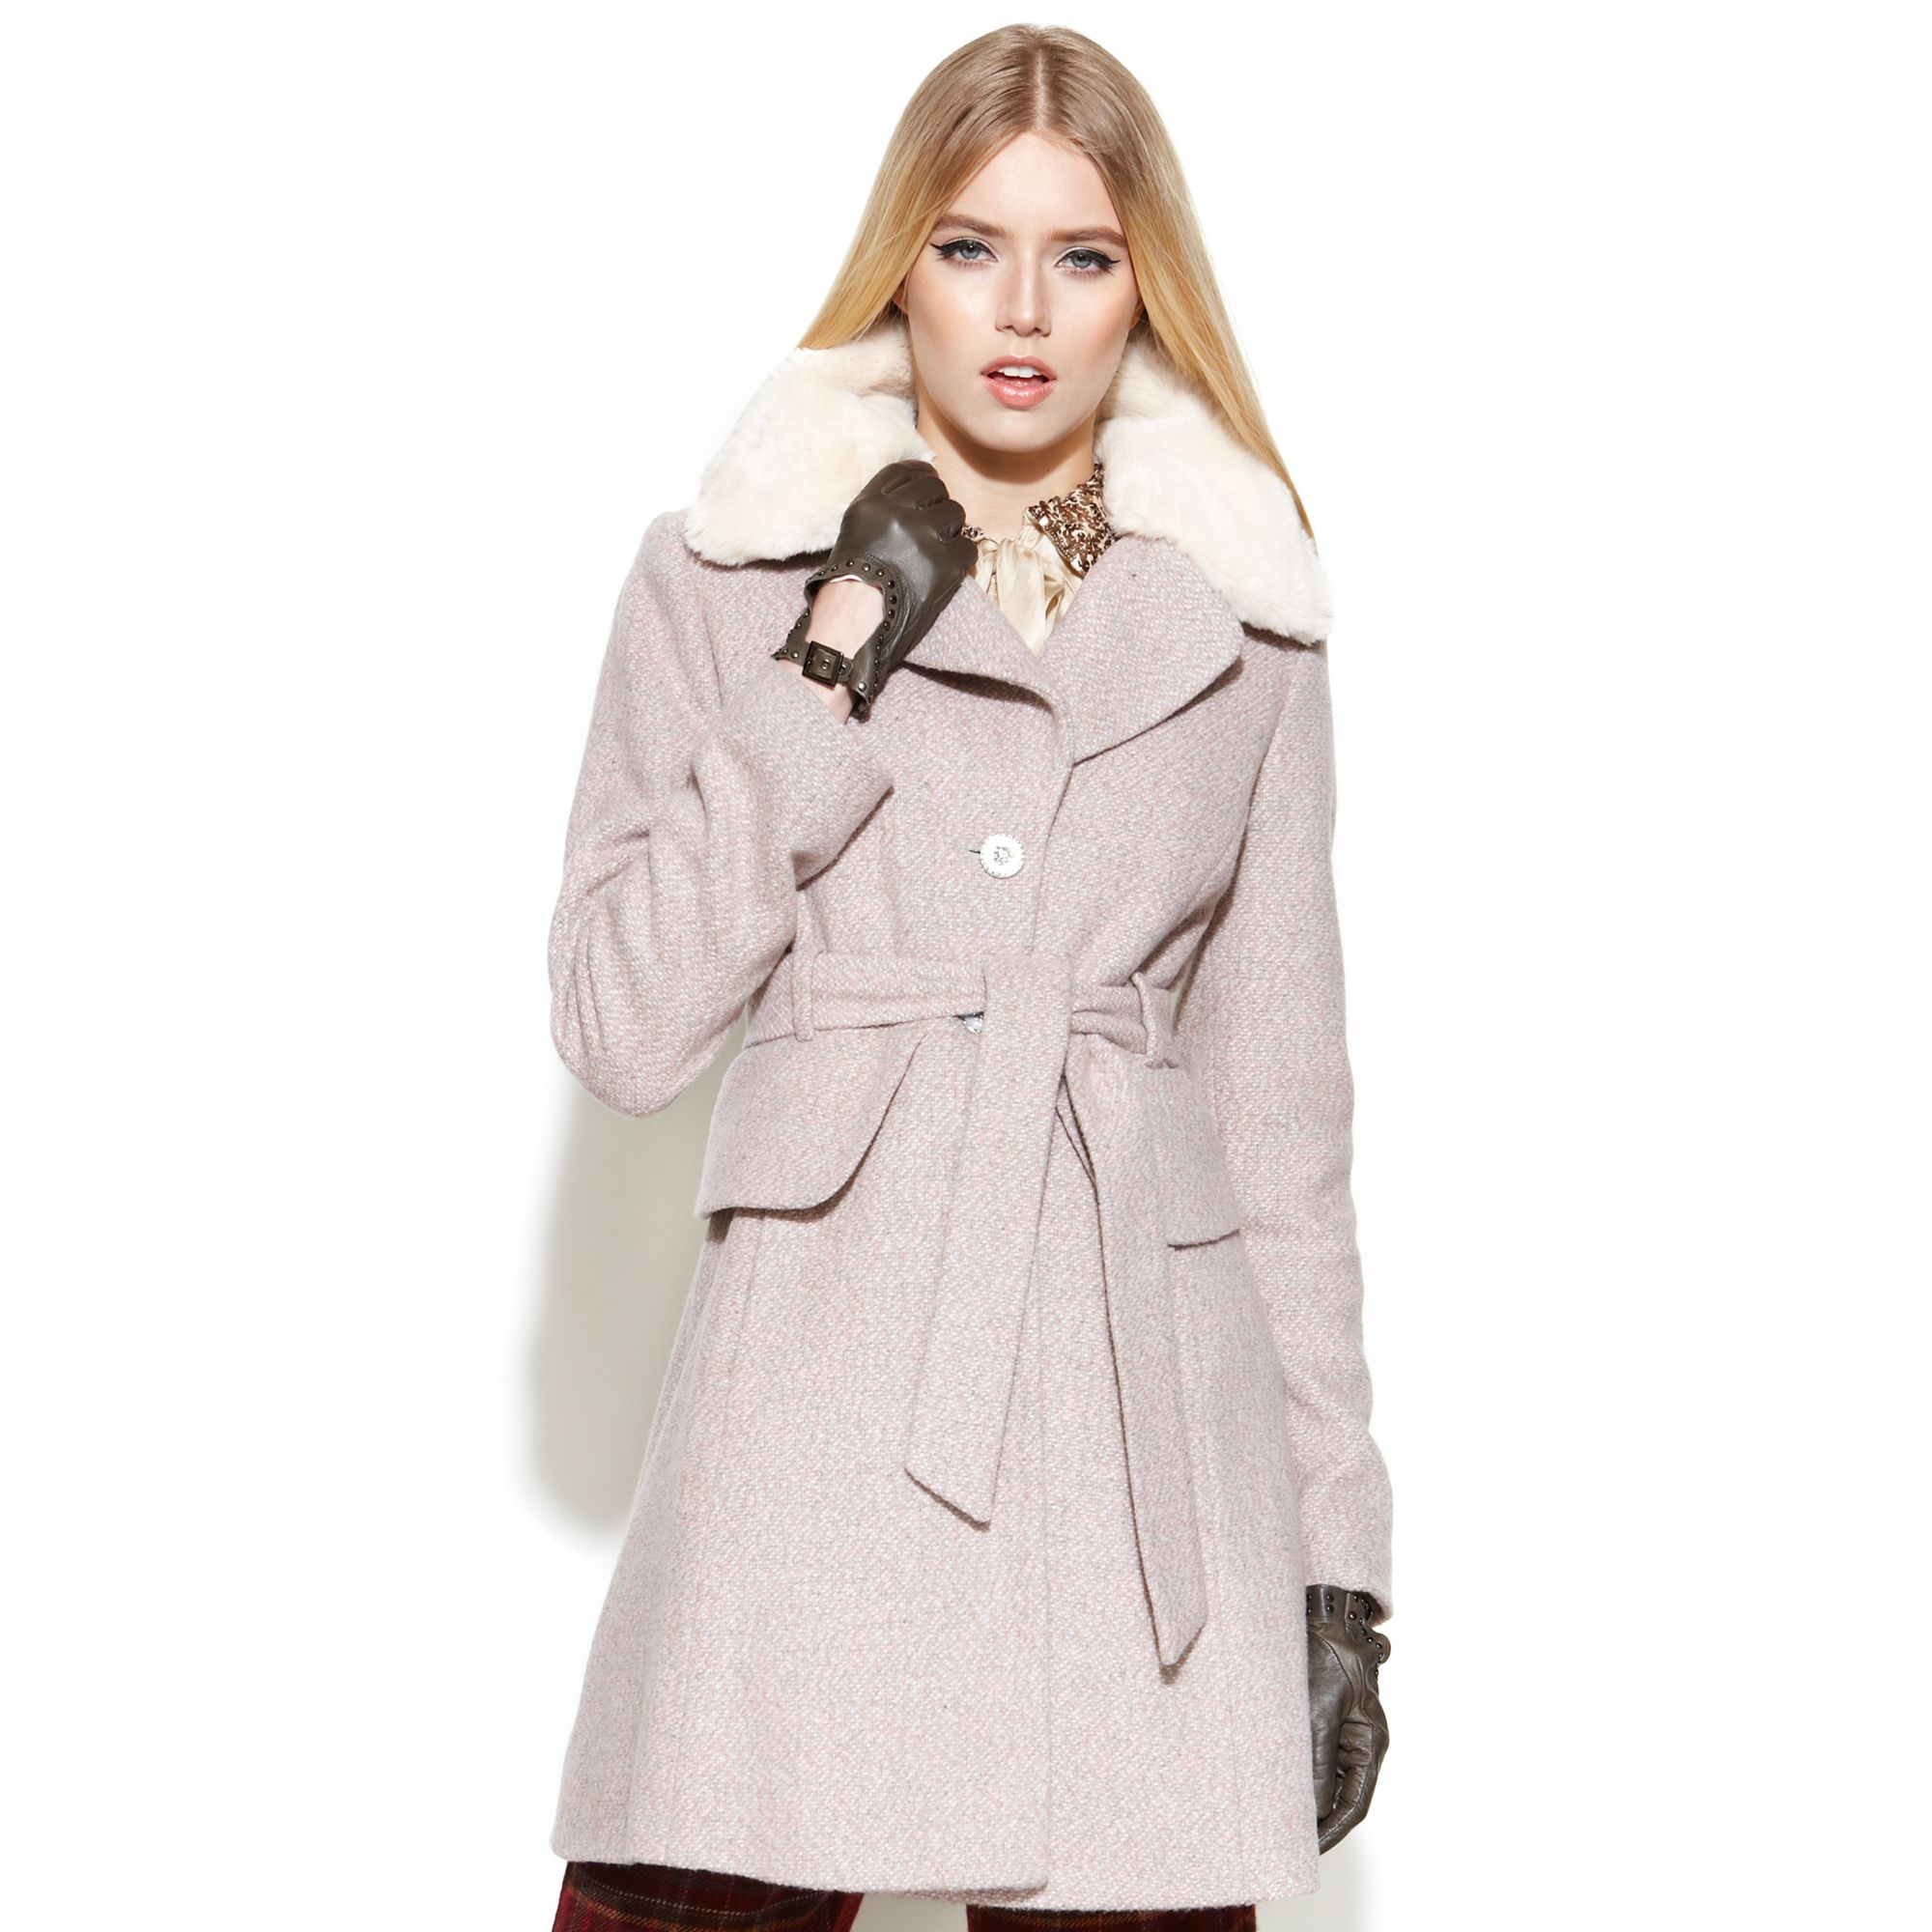 b5bea03eacbb Jessica Simpson Tweed Belted Faux-fur-collar Peplum Coat in Pink - Lyst